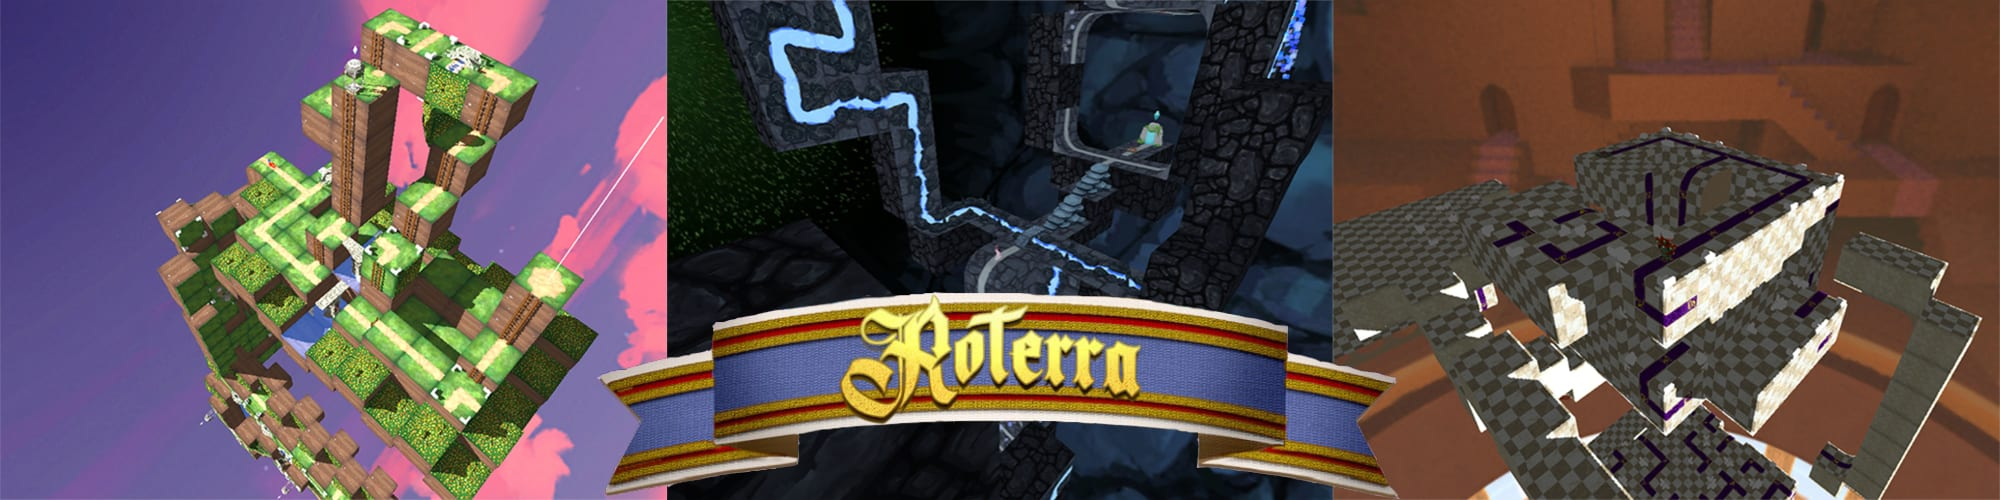 Roterra: a fairytale puzzle for those looking for a challenge